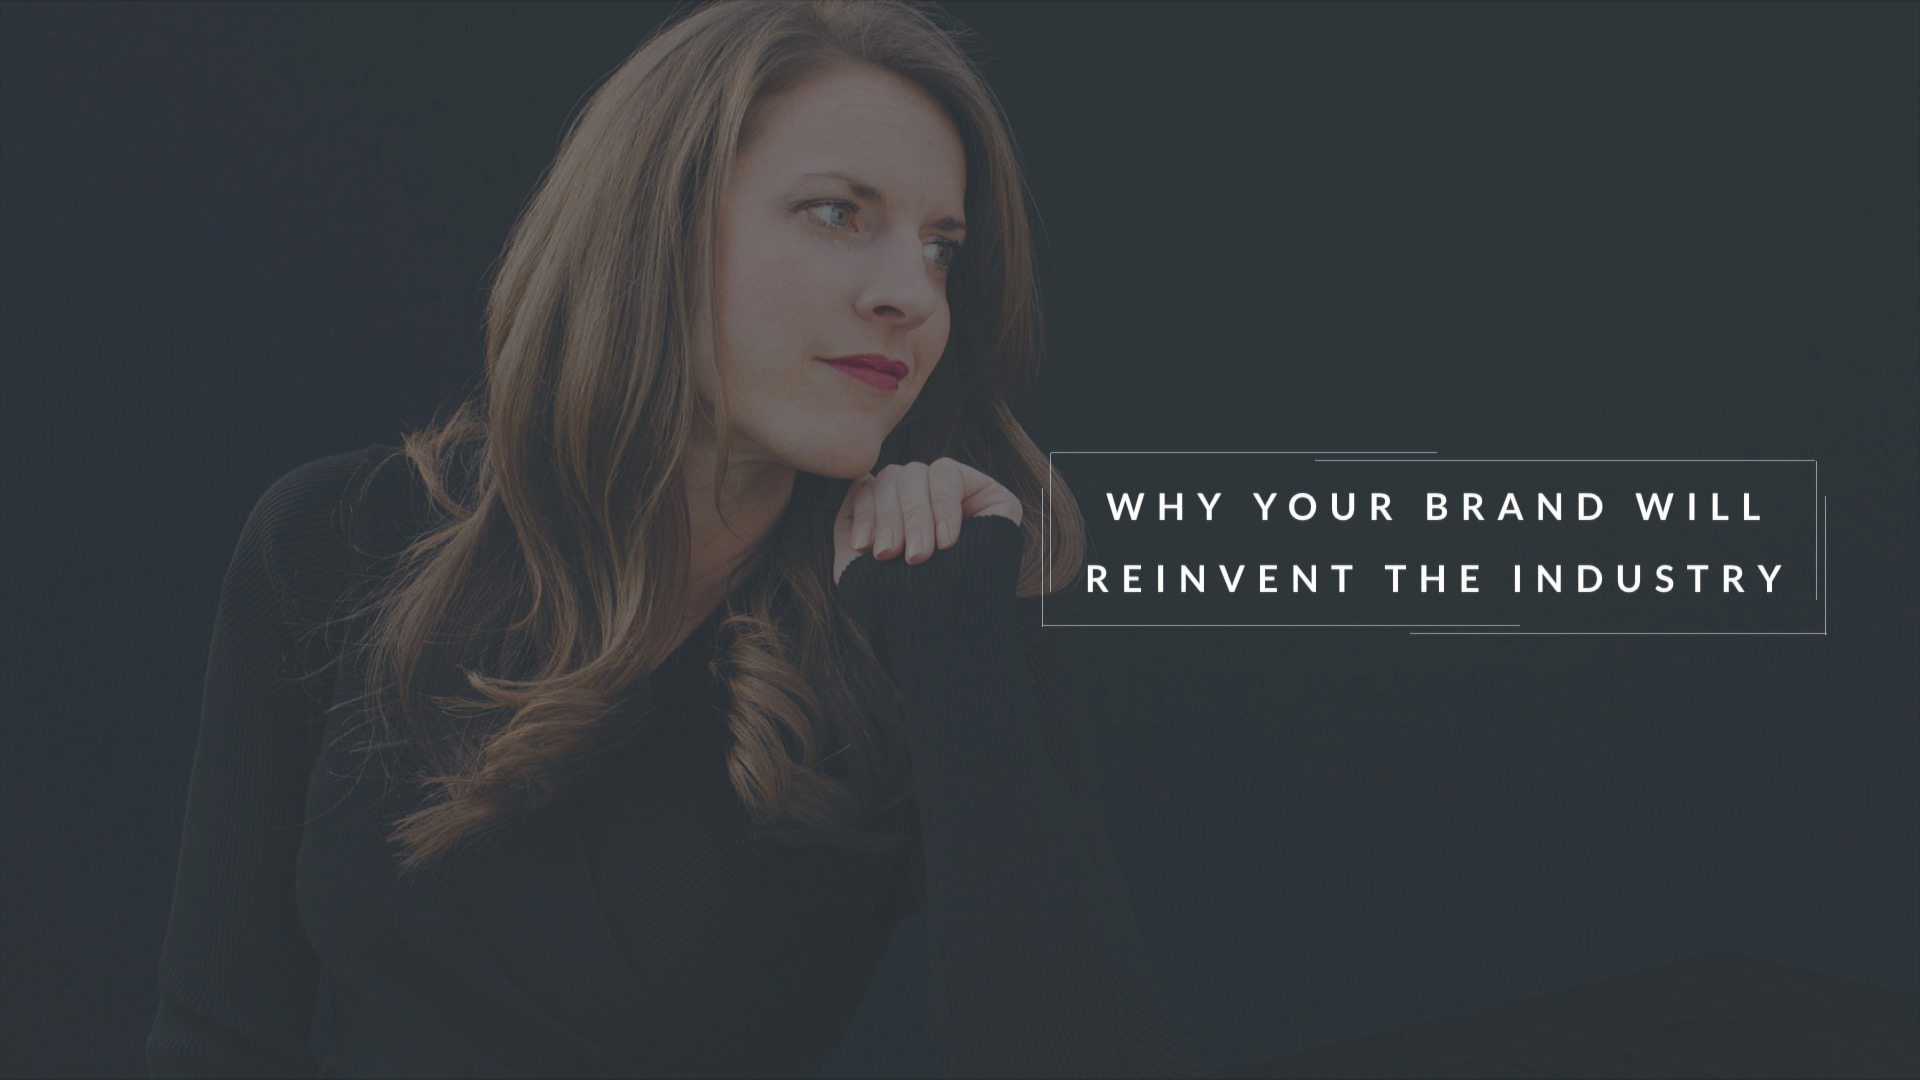 Krysta Masciale - Why You Brand Will Reinvent the Industry